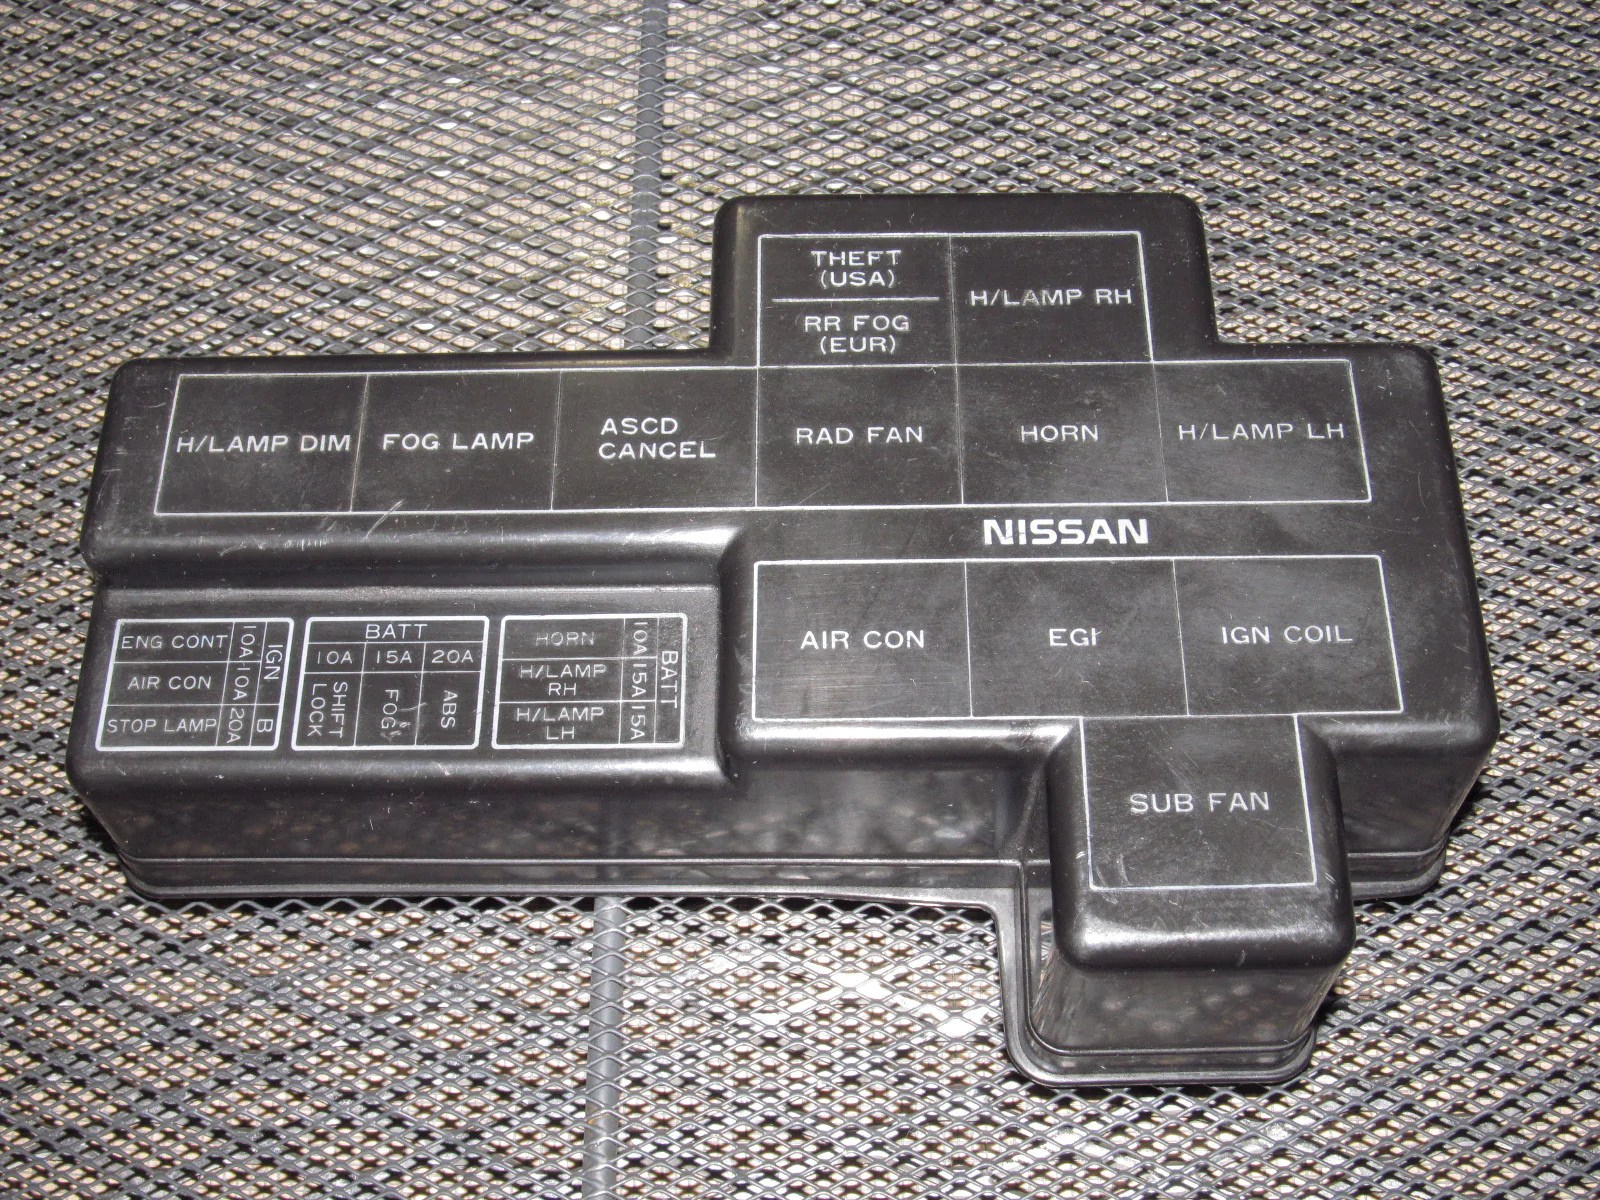 90 300zx fuse box layout wiring diagrams wd 1990 nissan 300zx fuse panel diagram wiring schematic [ 1600 x 1200 Pixel ]